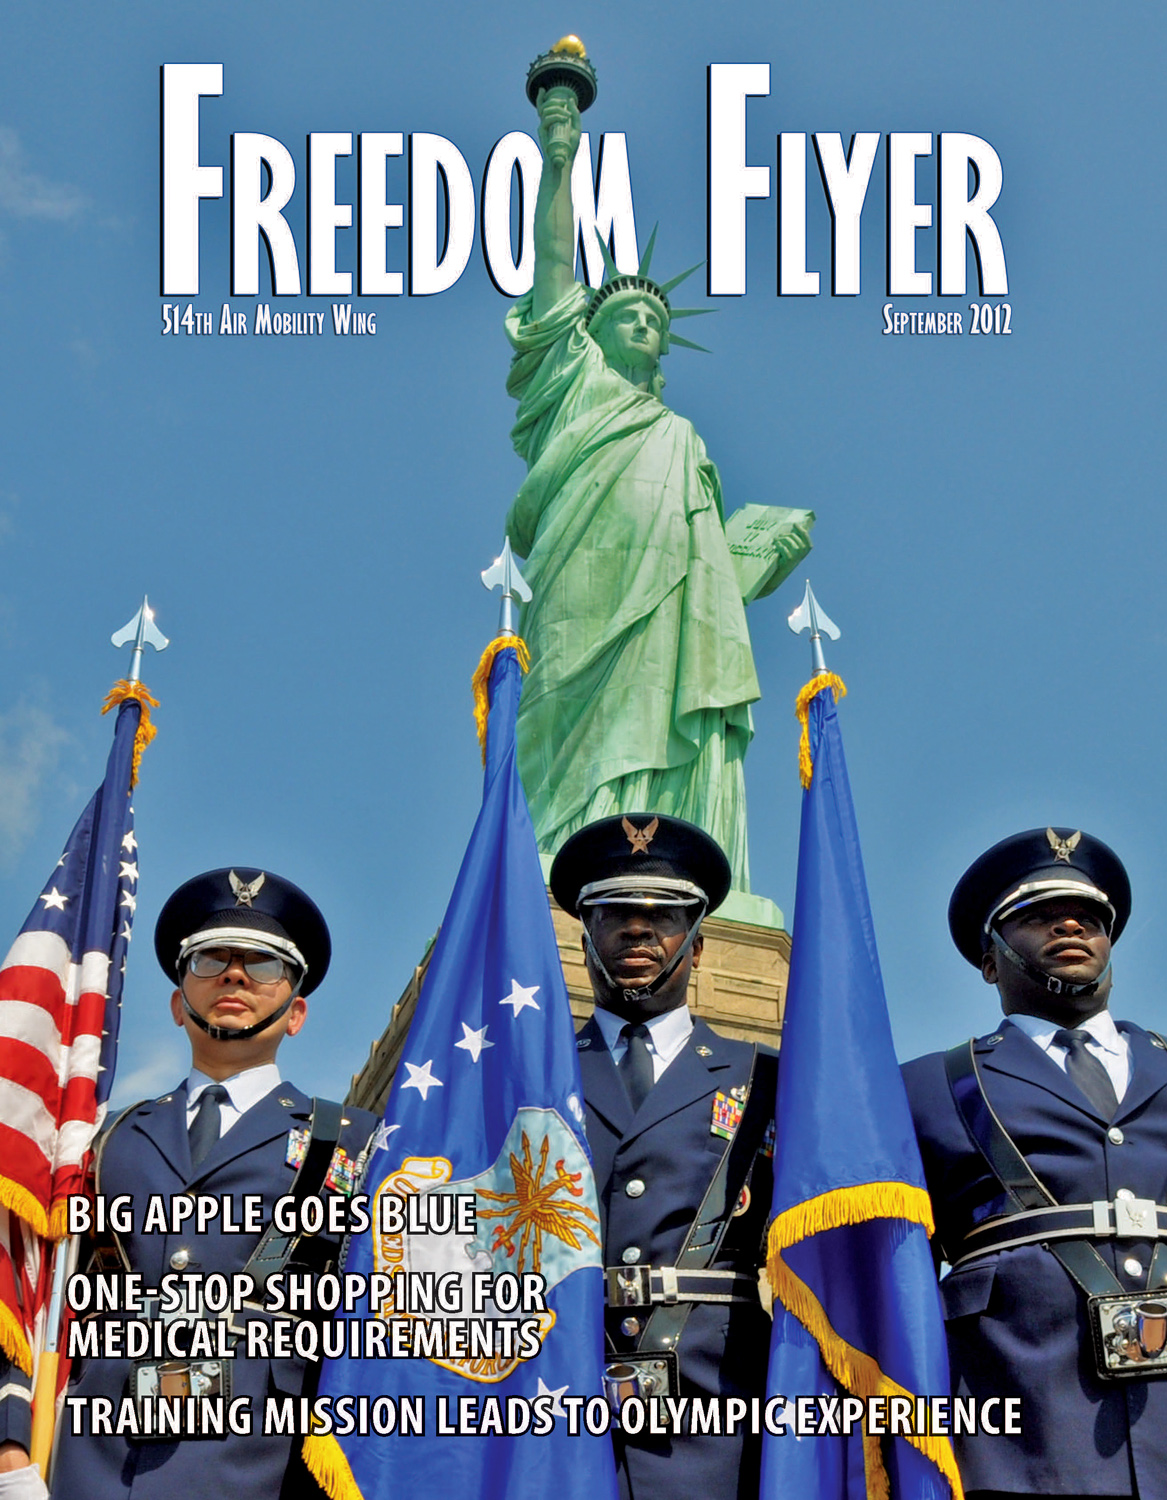 Freedom Flyer - September 2012